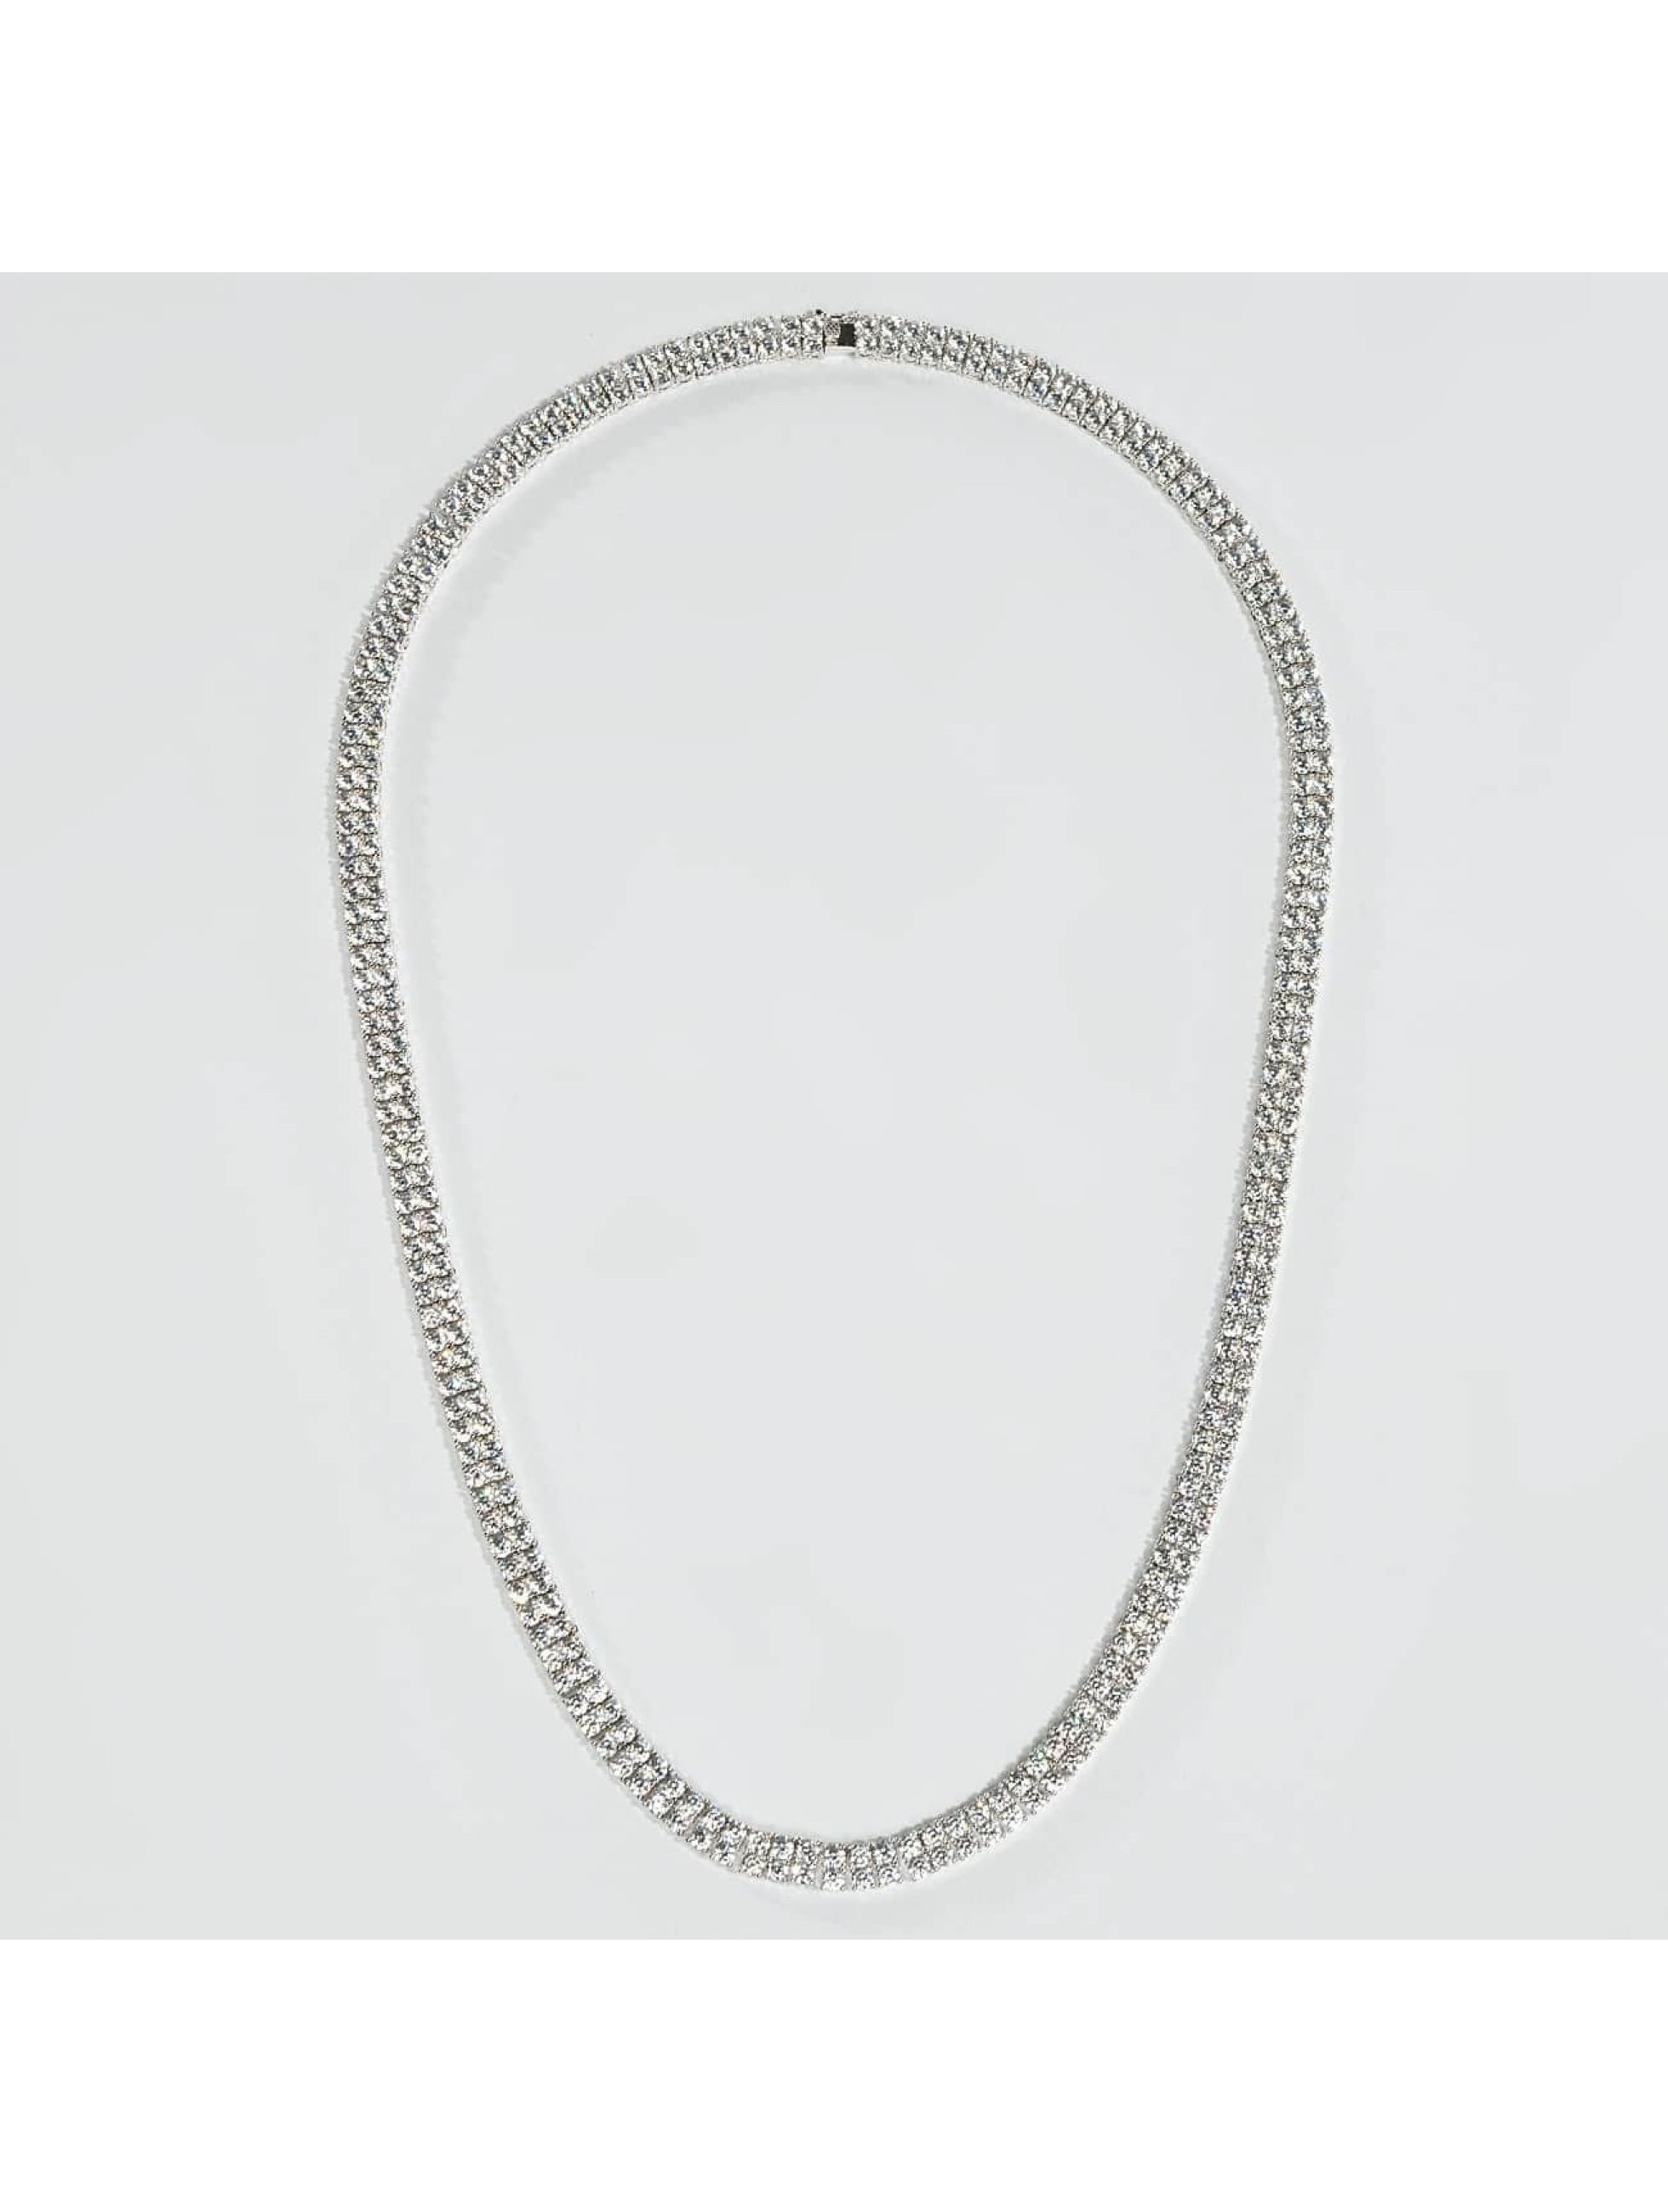 KING ICE Collier Rhodium_Plated 8mm Dual Row Tennis Style argent